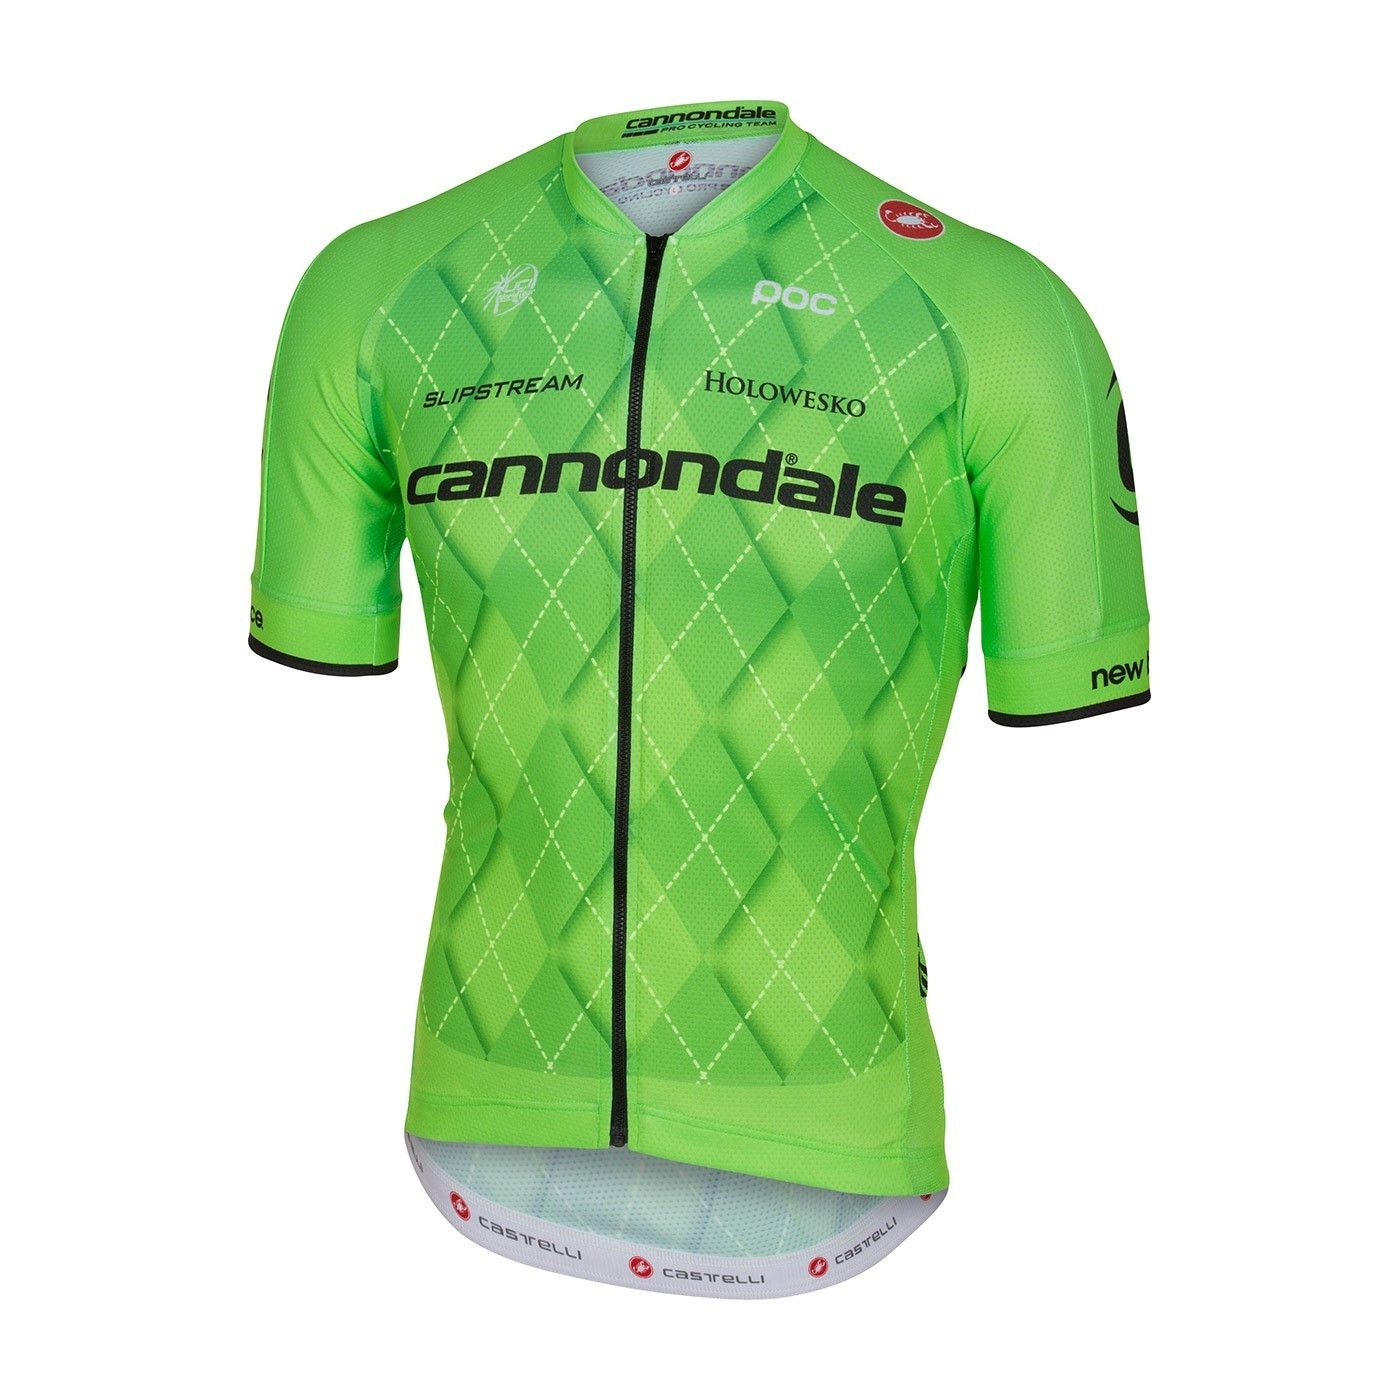 Maillot Cannondale Cannondale Pro Cycling Team by Castelli Vert - XL